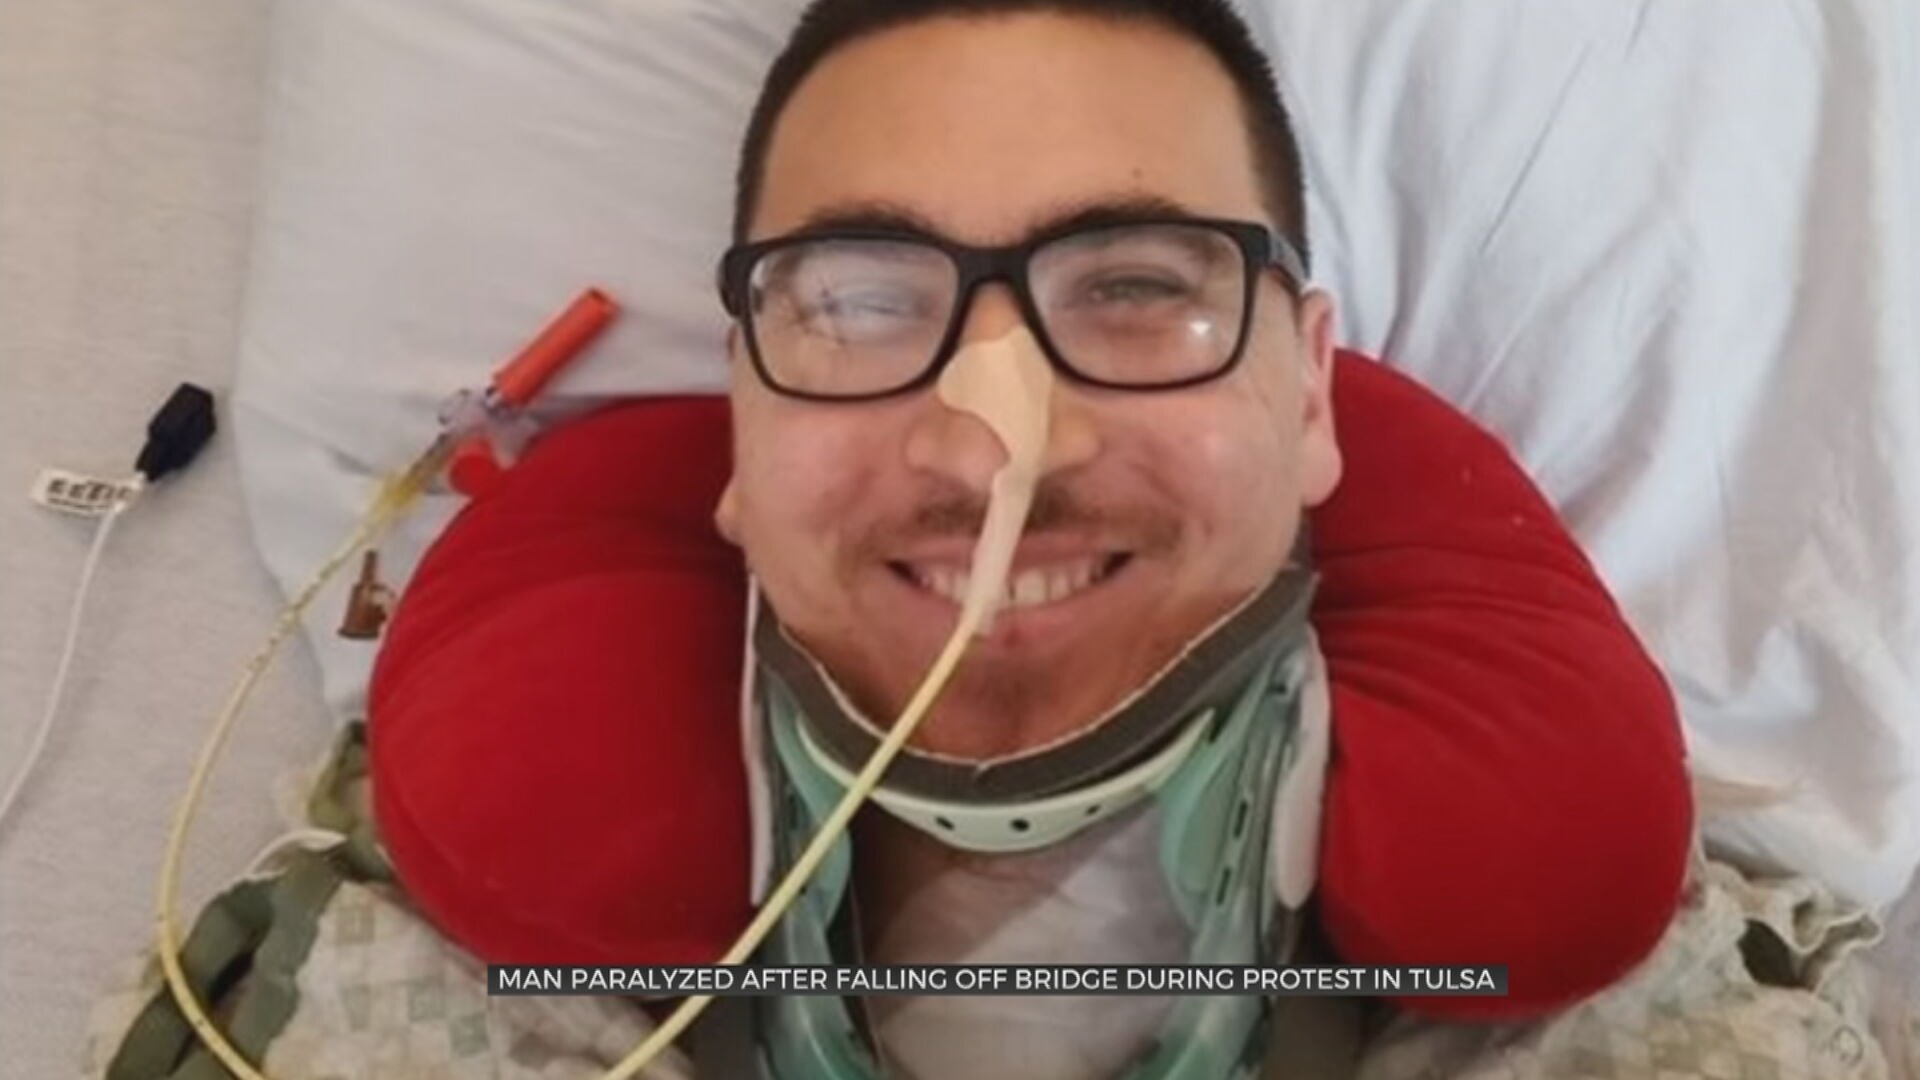 Protester Paralyzed After Falling From Tulsa Bridge Continues Recovery In Hospital